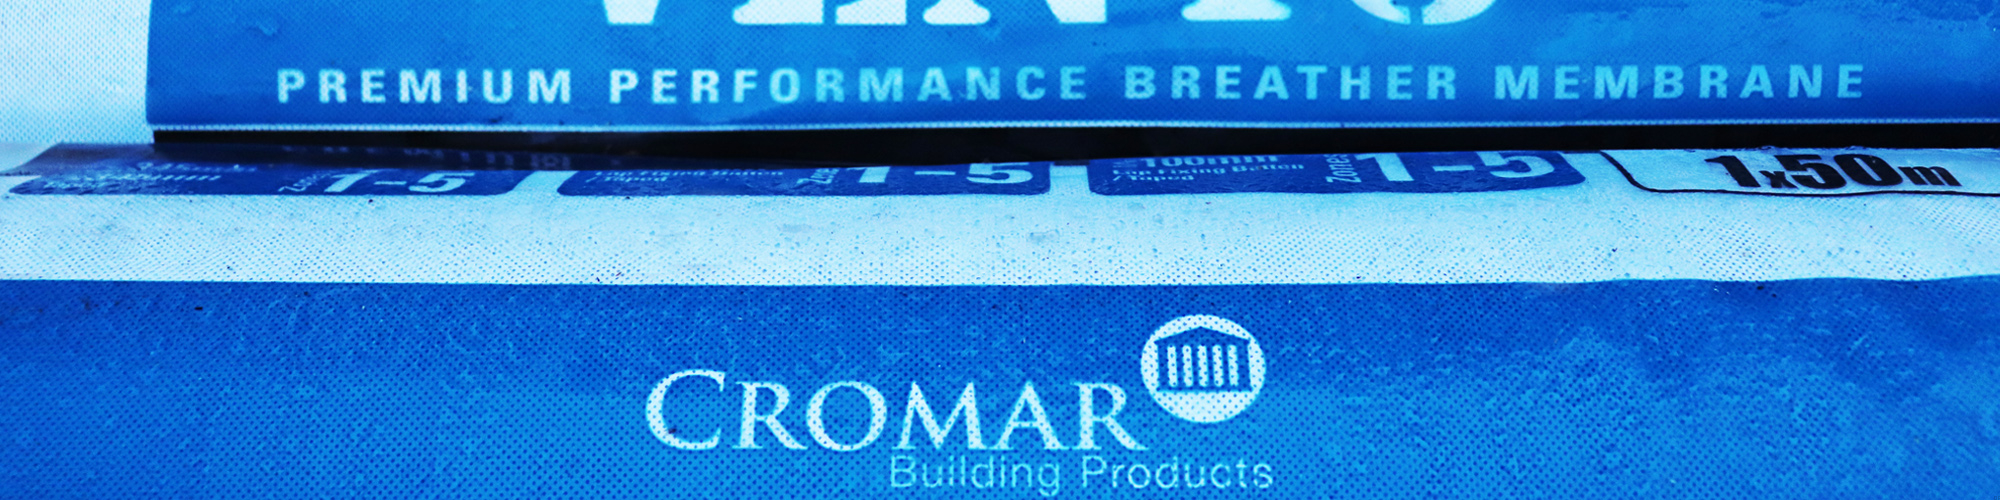 Cromar, underlays, roofing membranes, sheets, roof coating